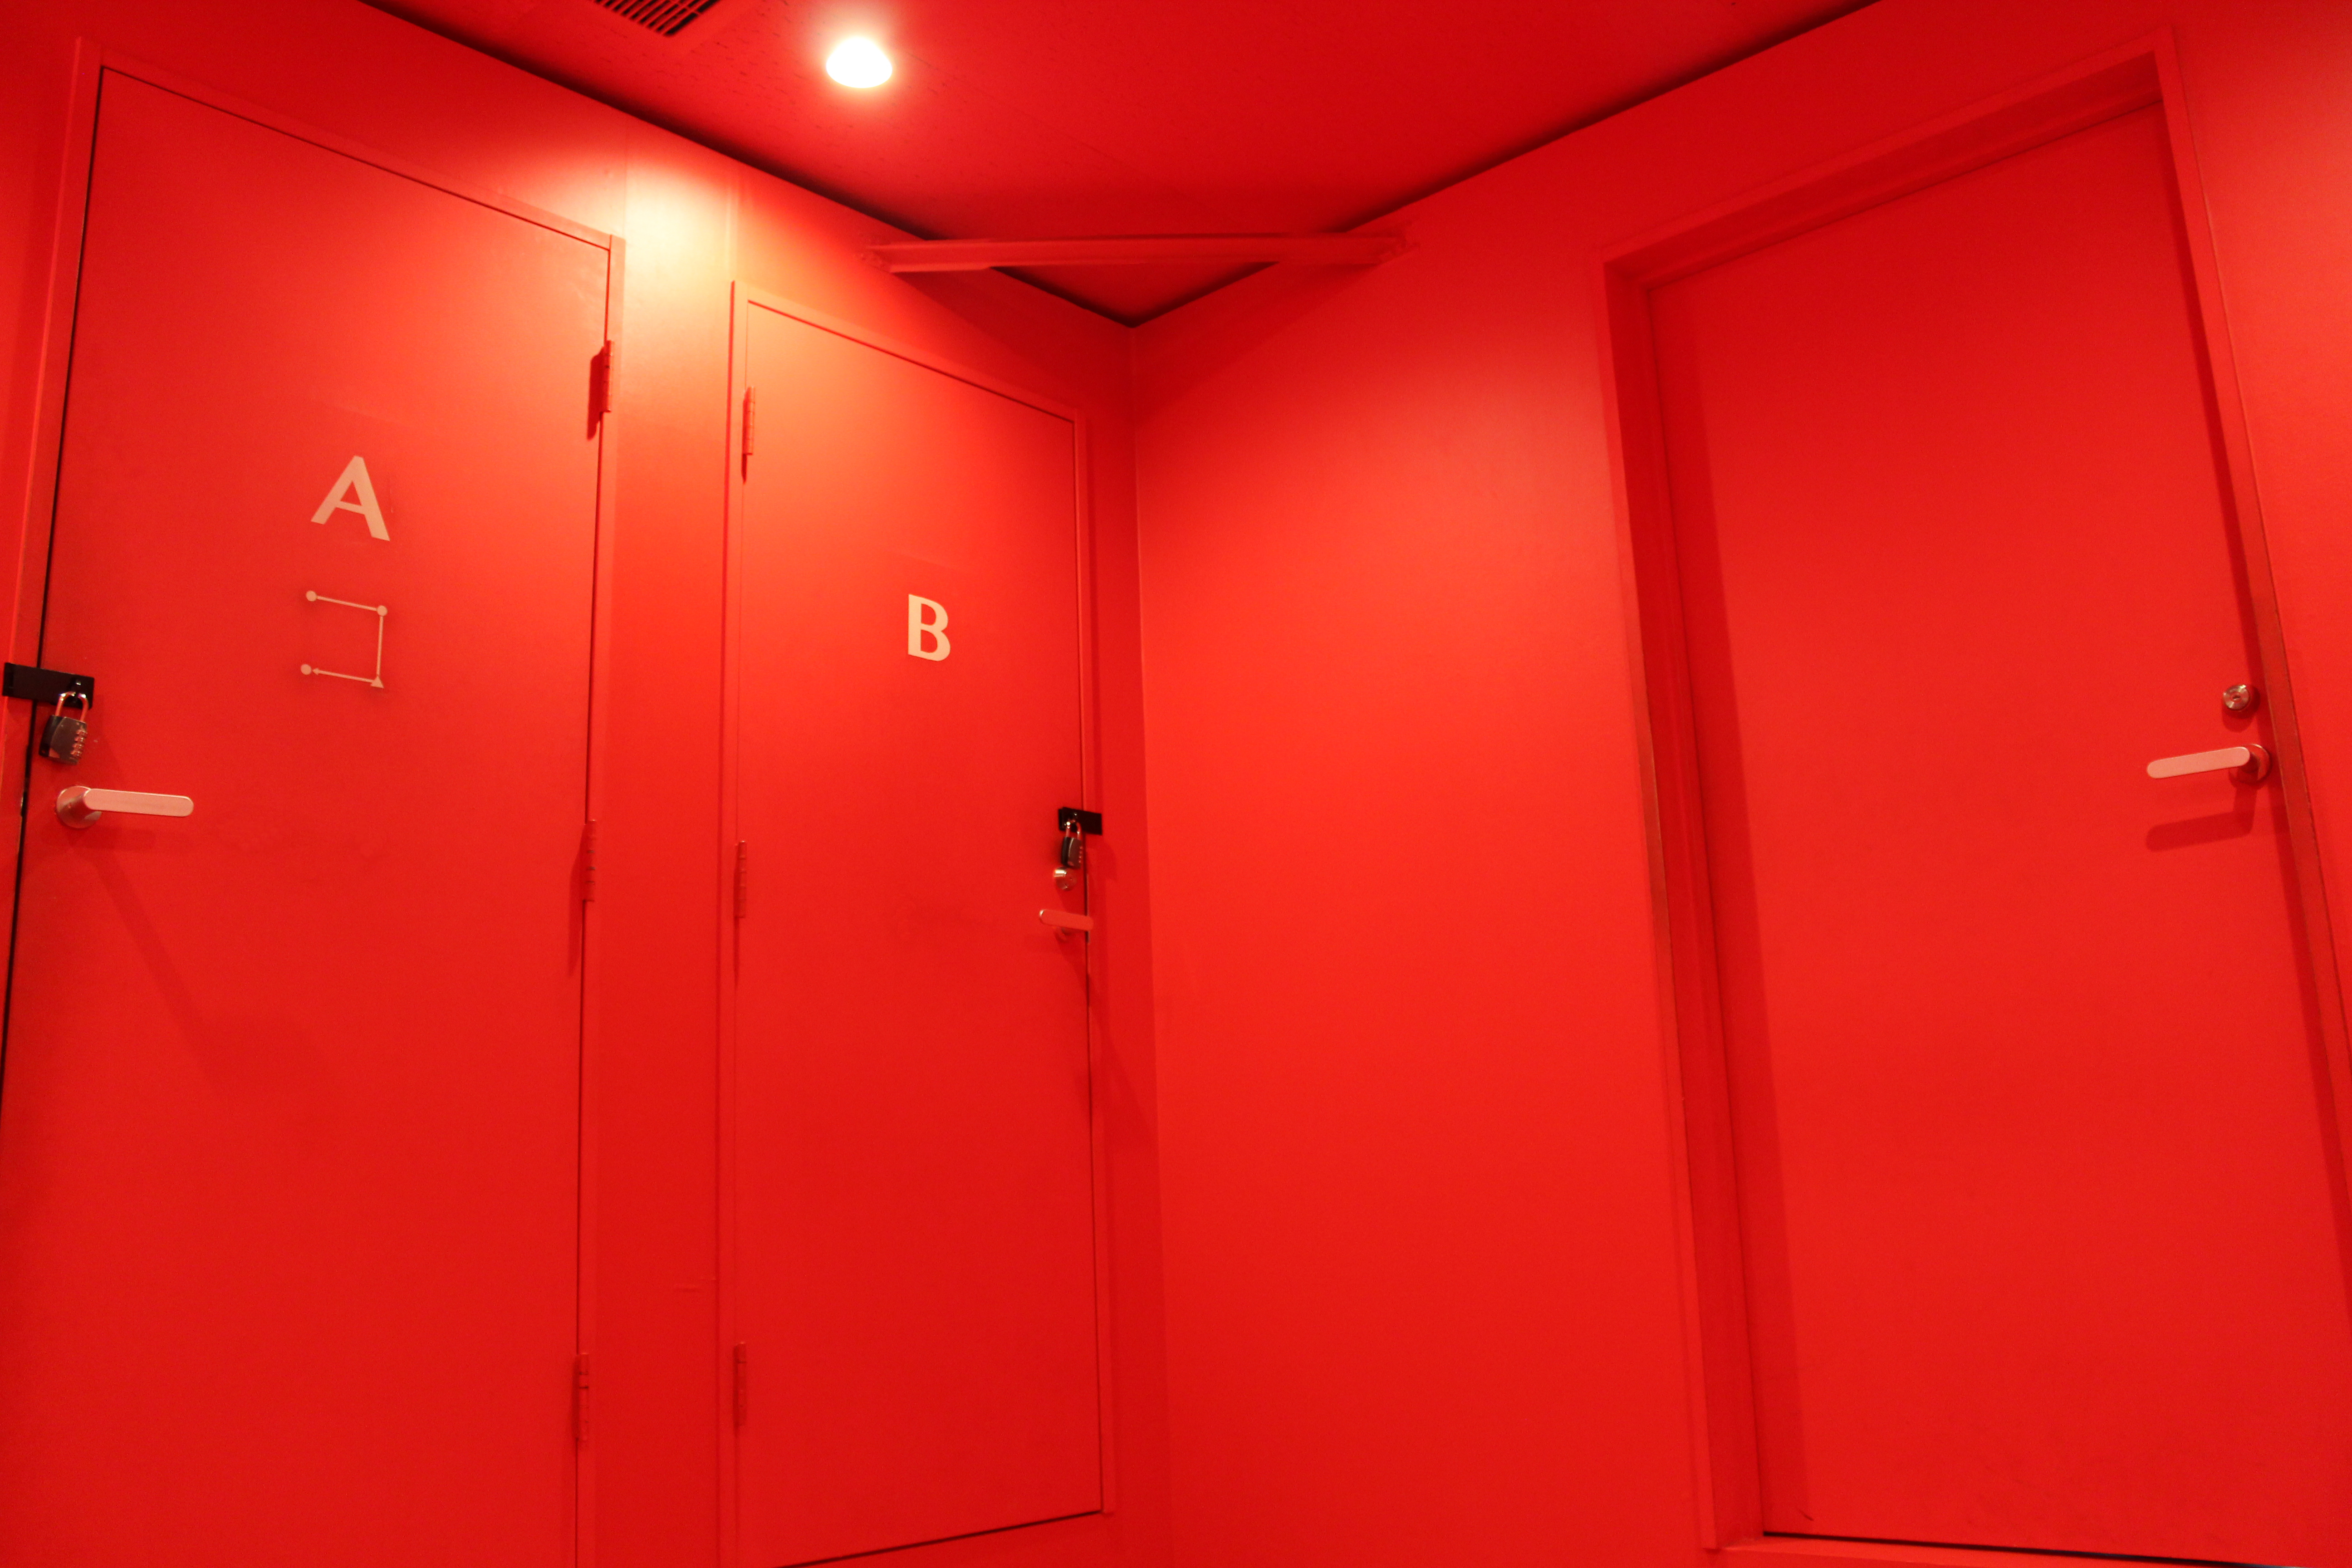 Red Room Puzzle Japan Daily